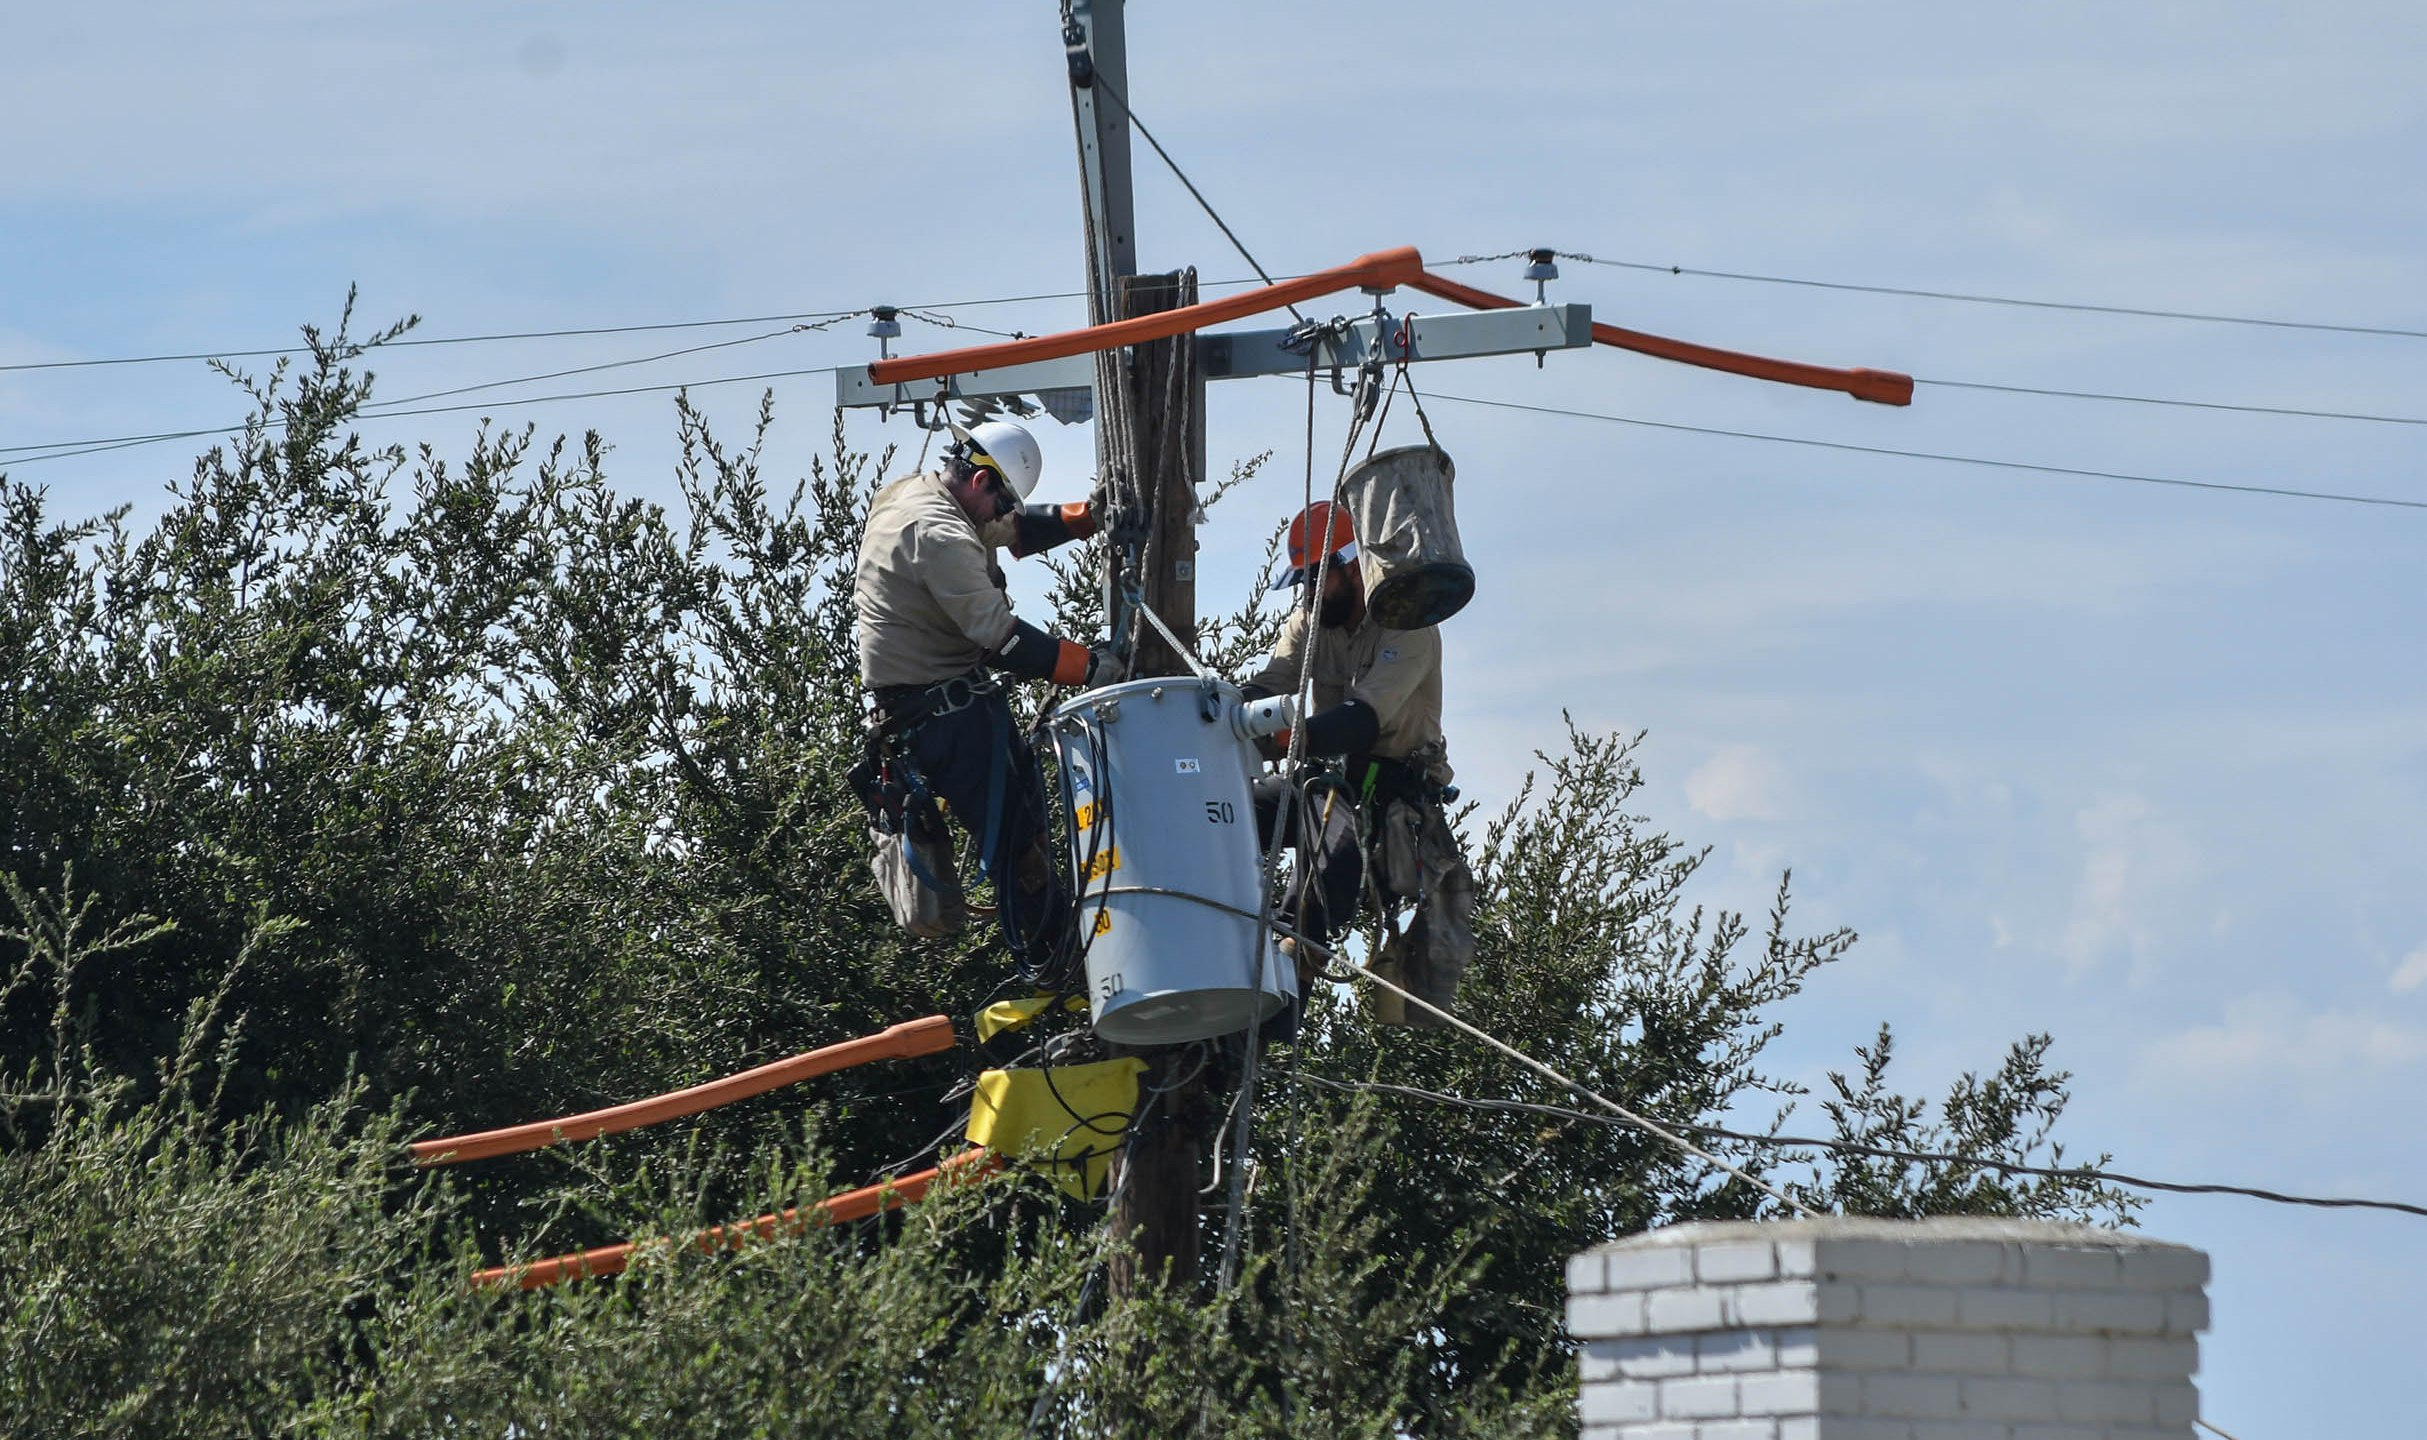 The L.A. Department of Water and Power tweeted this image of crews working on a power line on Aug. 16, 2020.